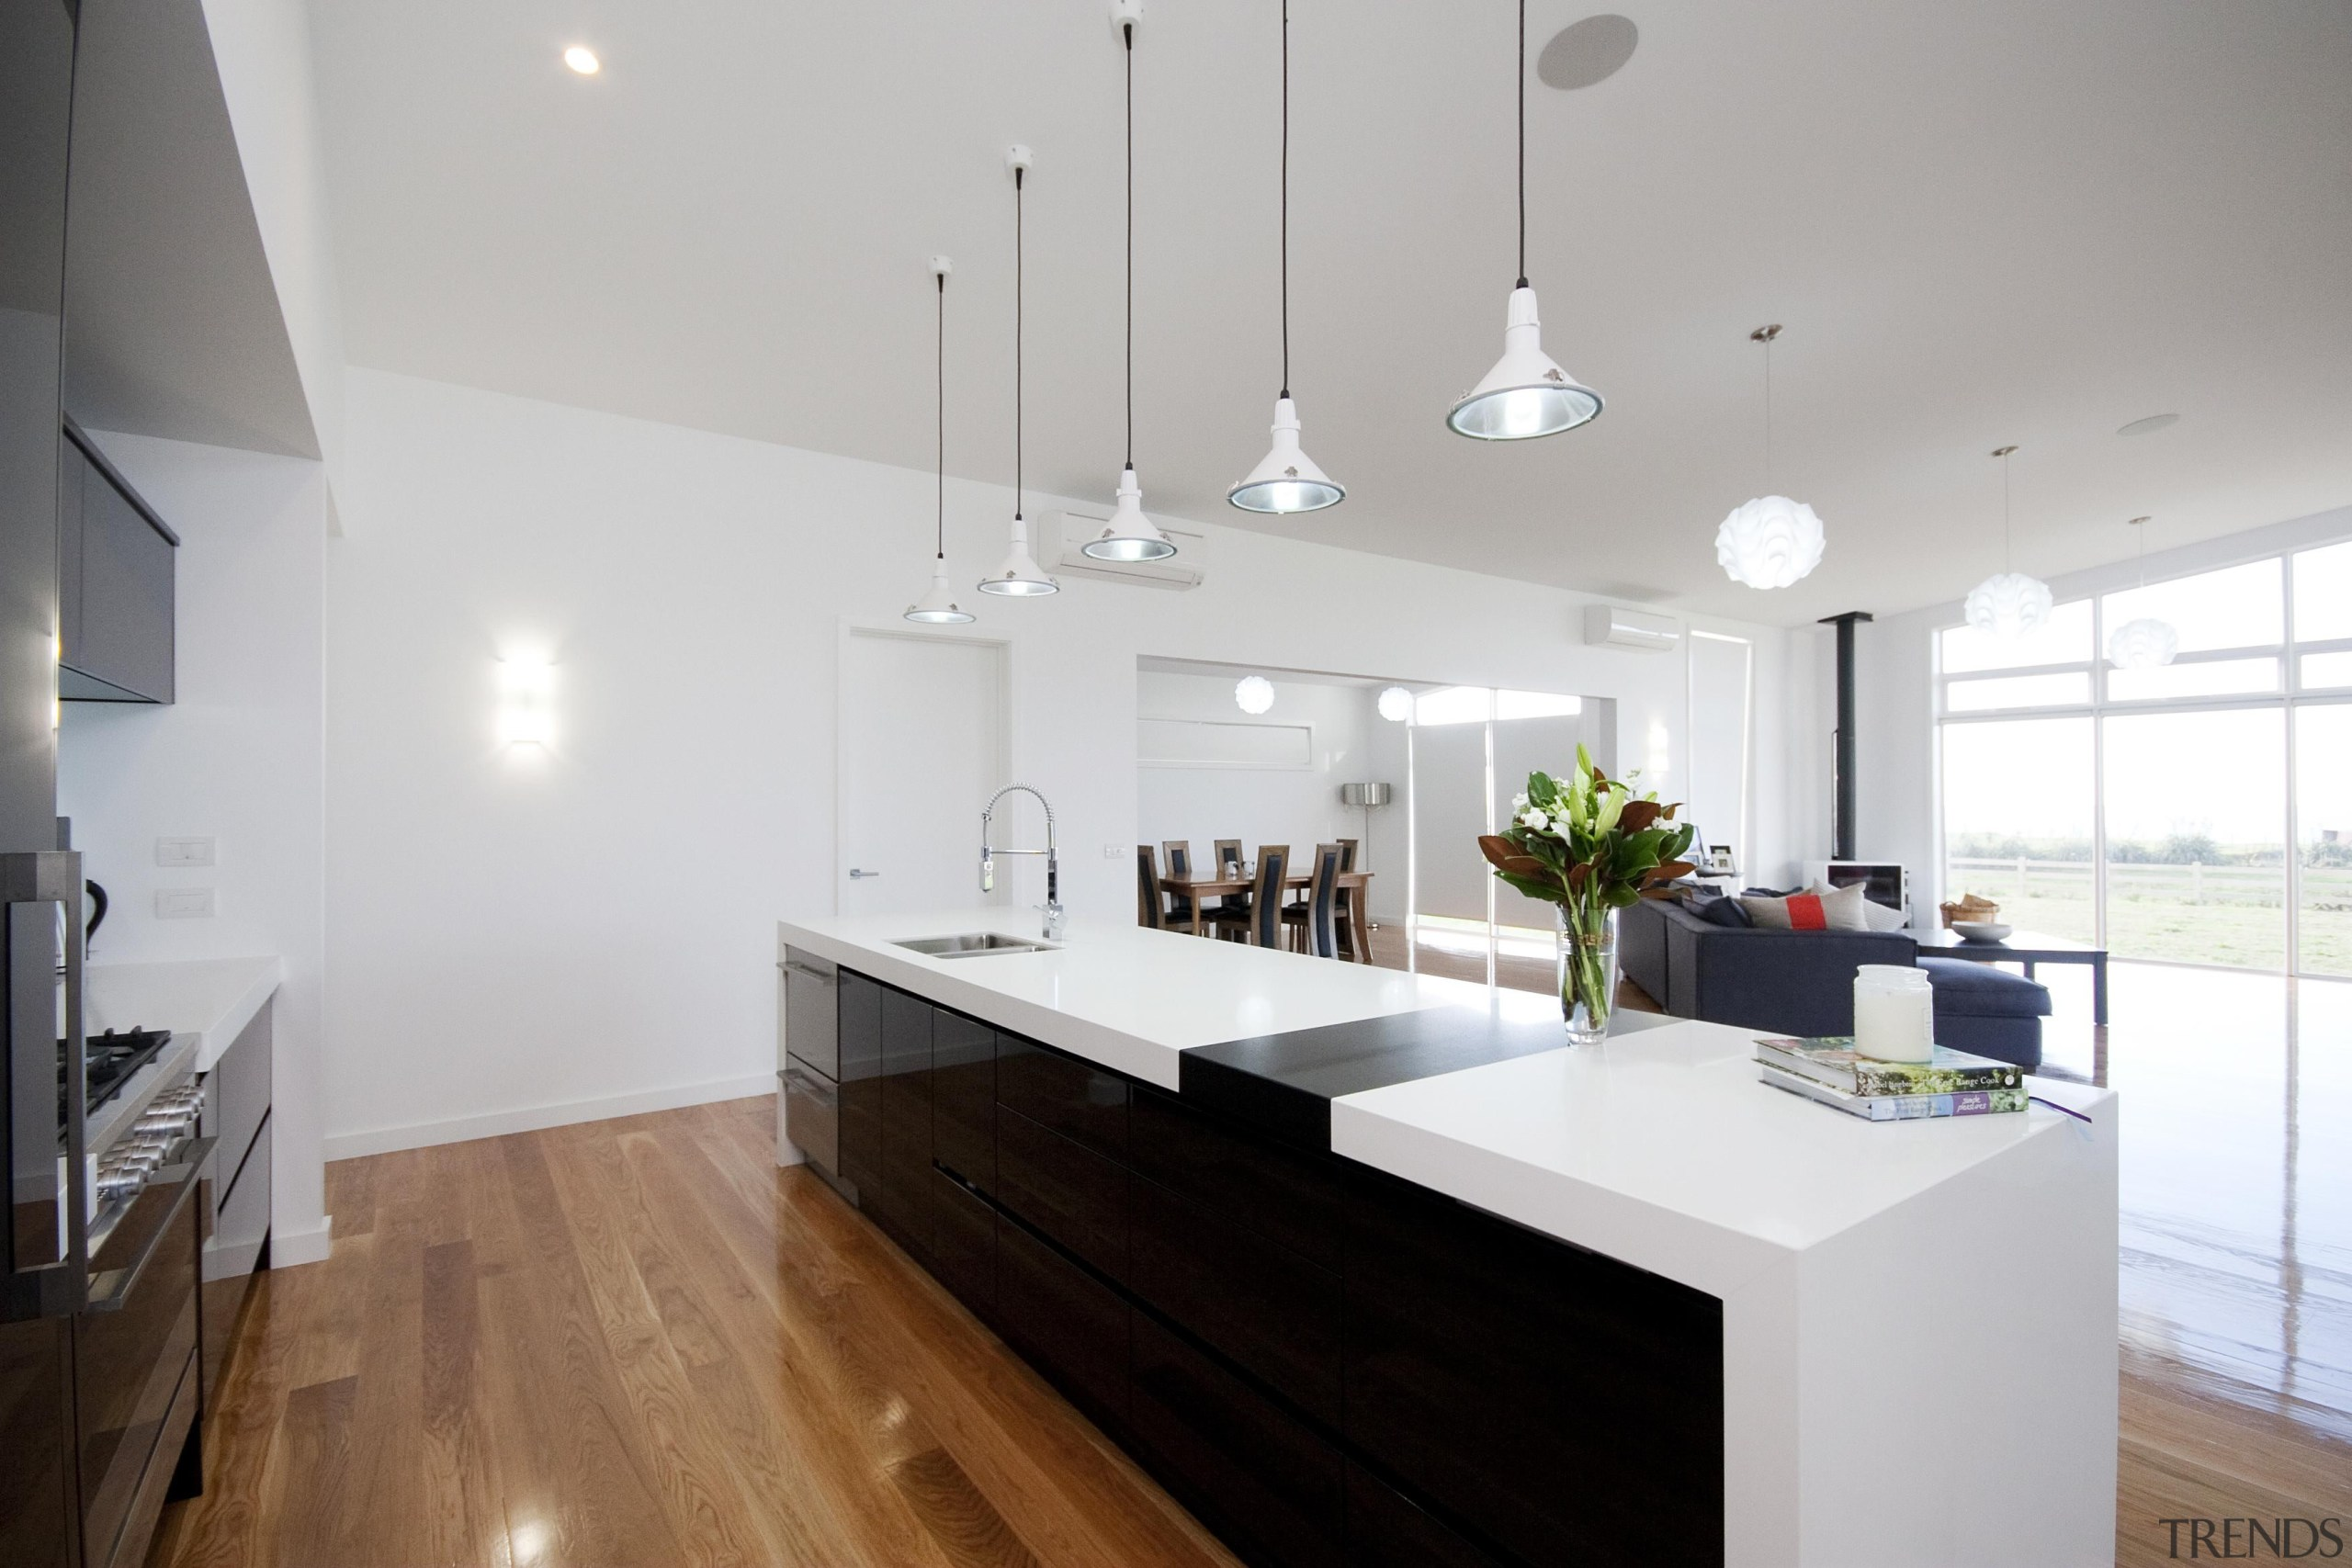 Staple island kitchen at the heart of this architecture, countertop, house, interior design, kitchen, real estate, room, gray, white